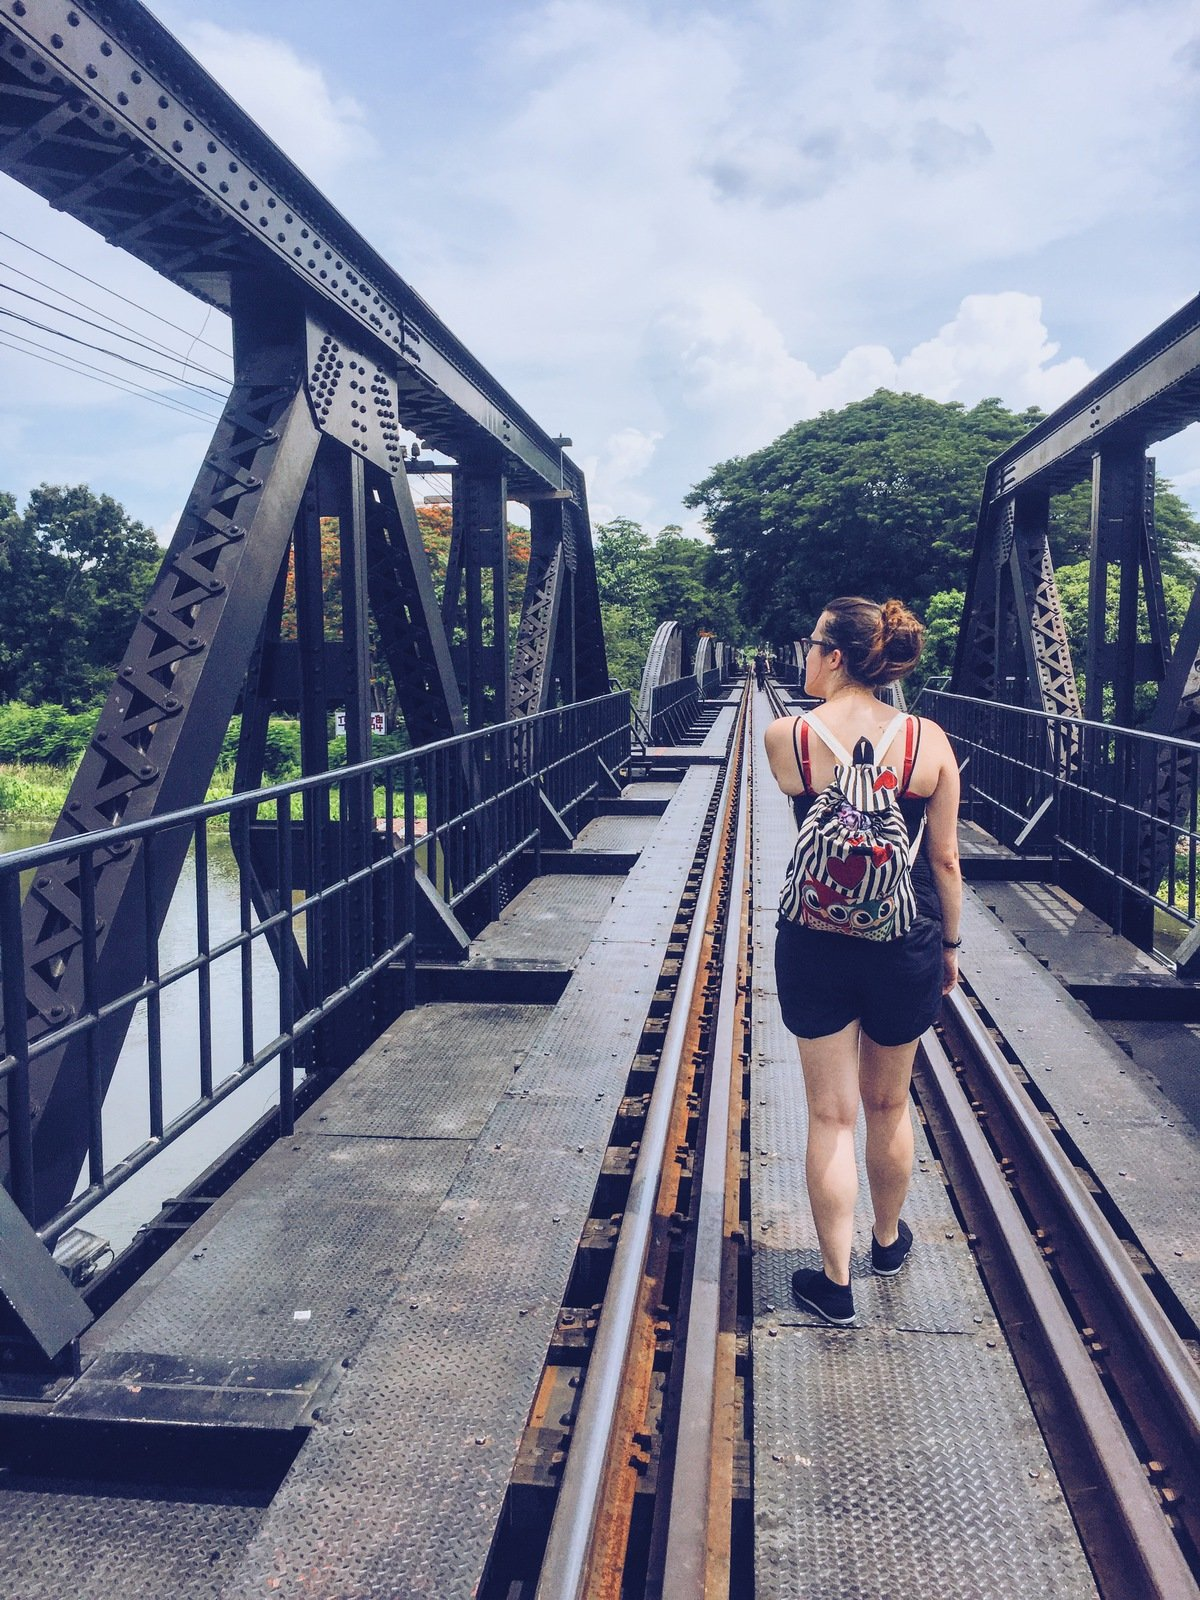 Walking the bridge on the river Kwai in Kanchanaburi Thailand